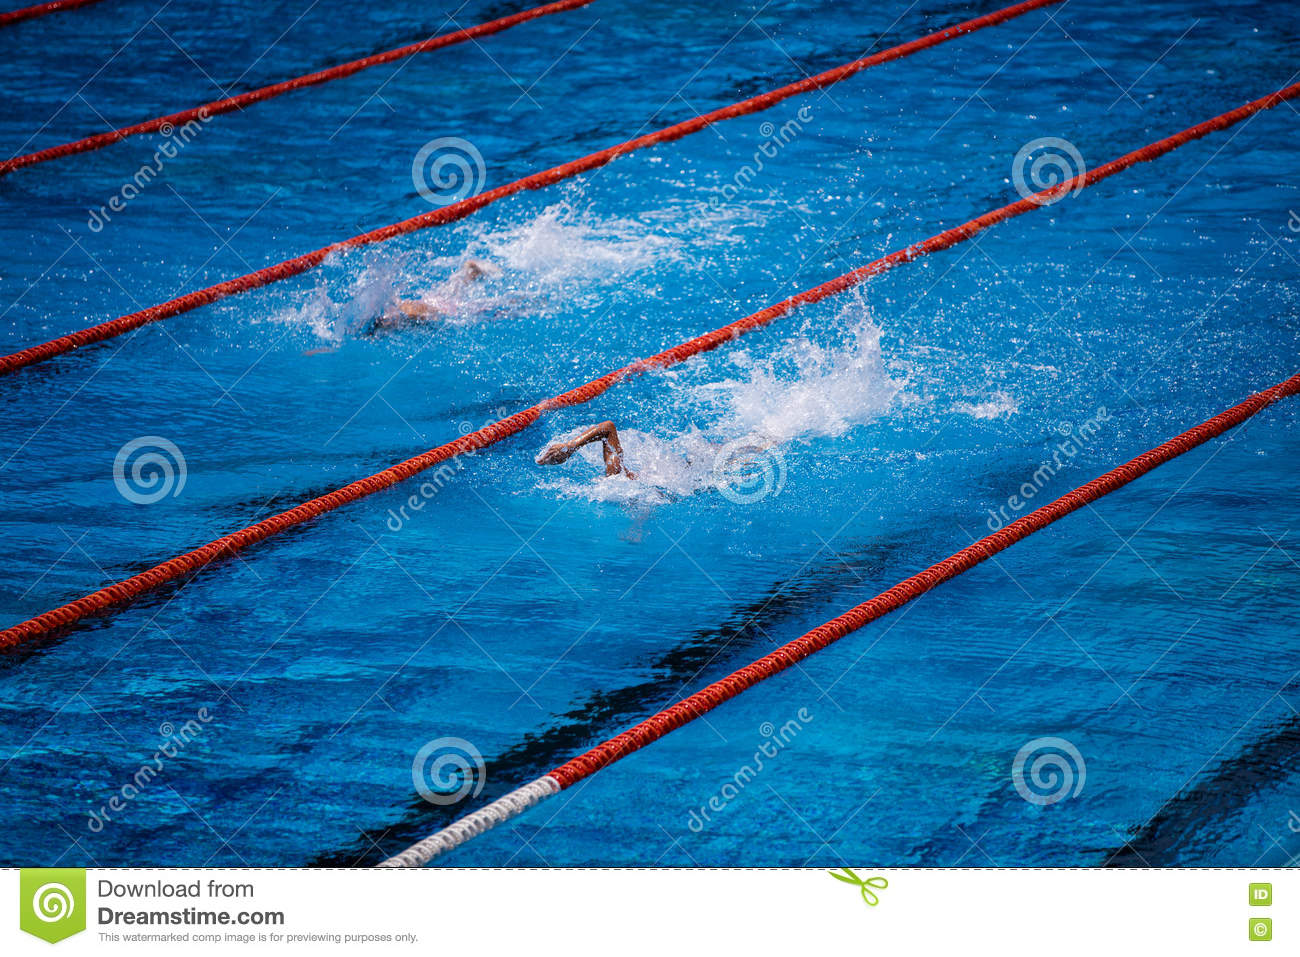 olympic swimming pool clipart. royaltyfree stock photo download olympic swimming pool clipart